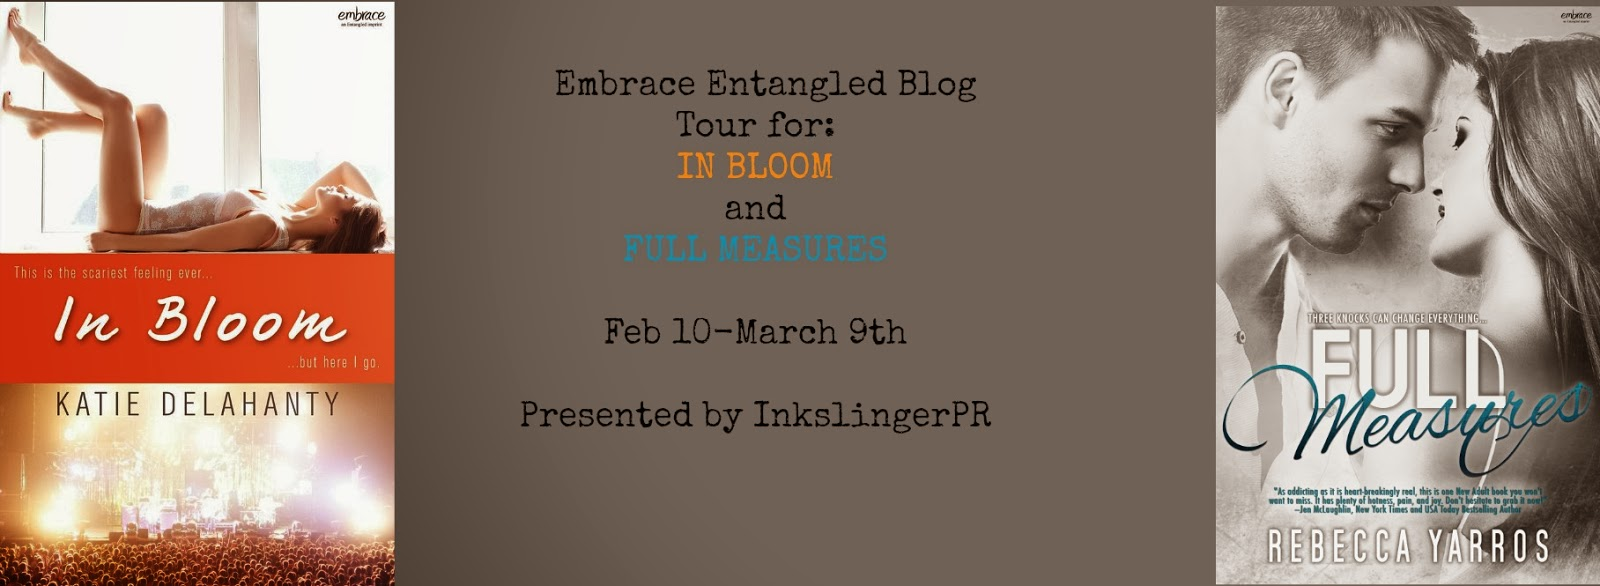 http://www.inkslingerpr.com/2014/02/09/embrace-blog-tour-in-bloom-and-full-measures/